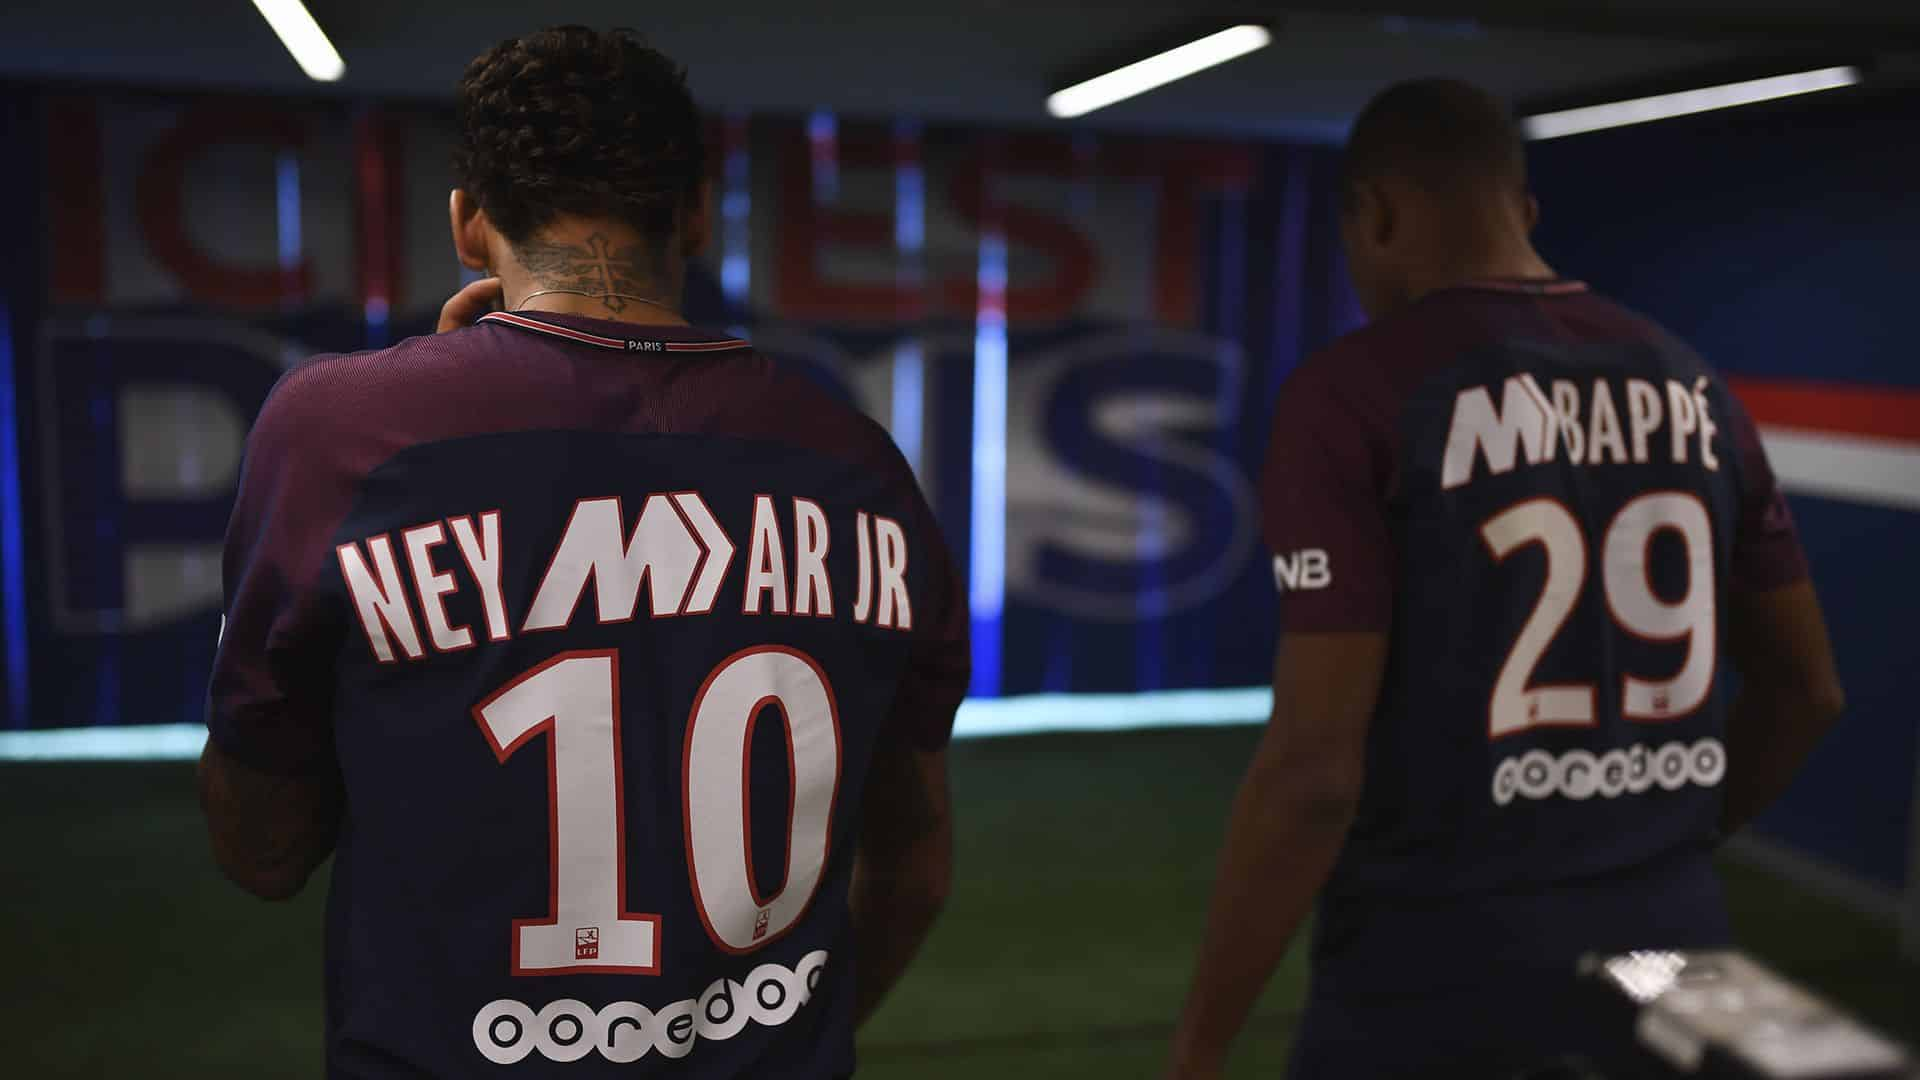 maillot-nike-paris-saint-germain-home-2018-limited-edition-neymarjr-mbappe-2